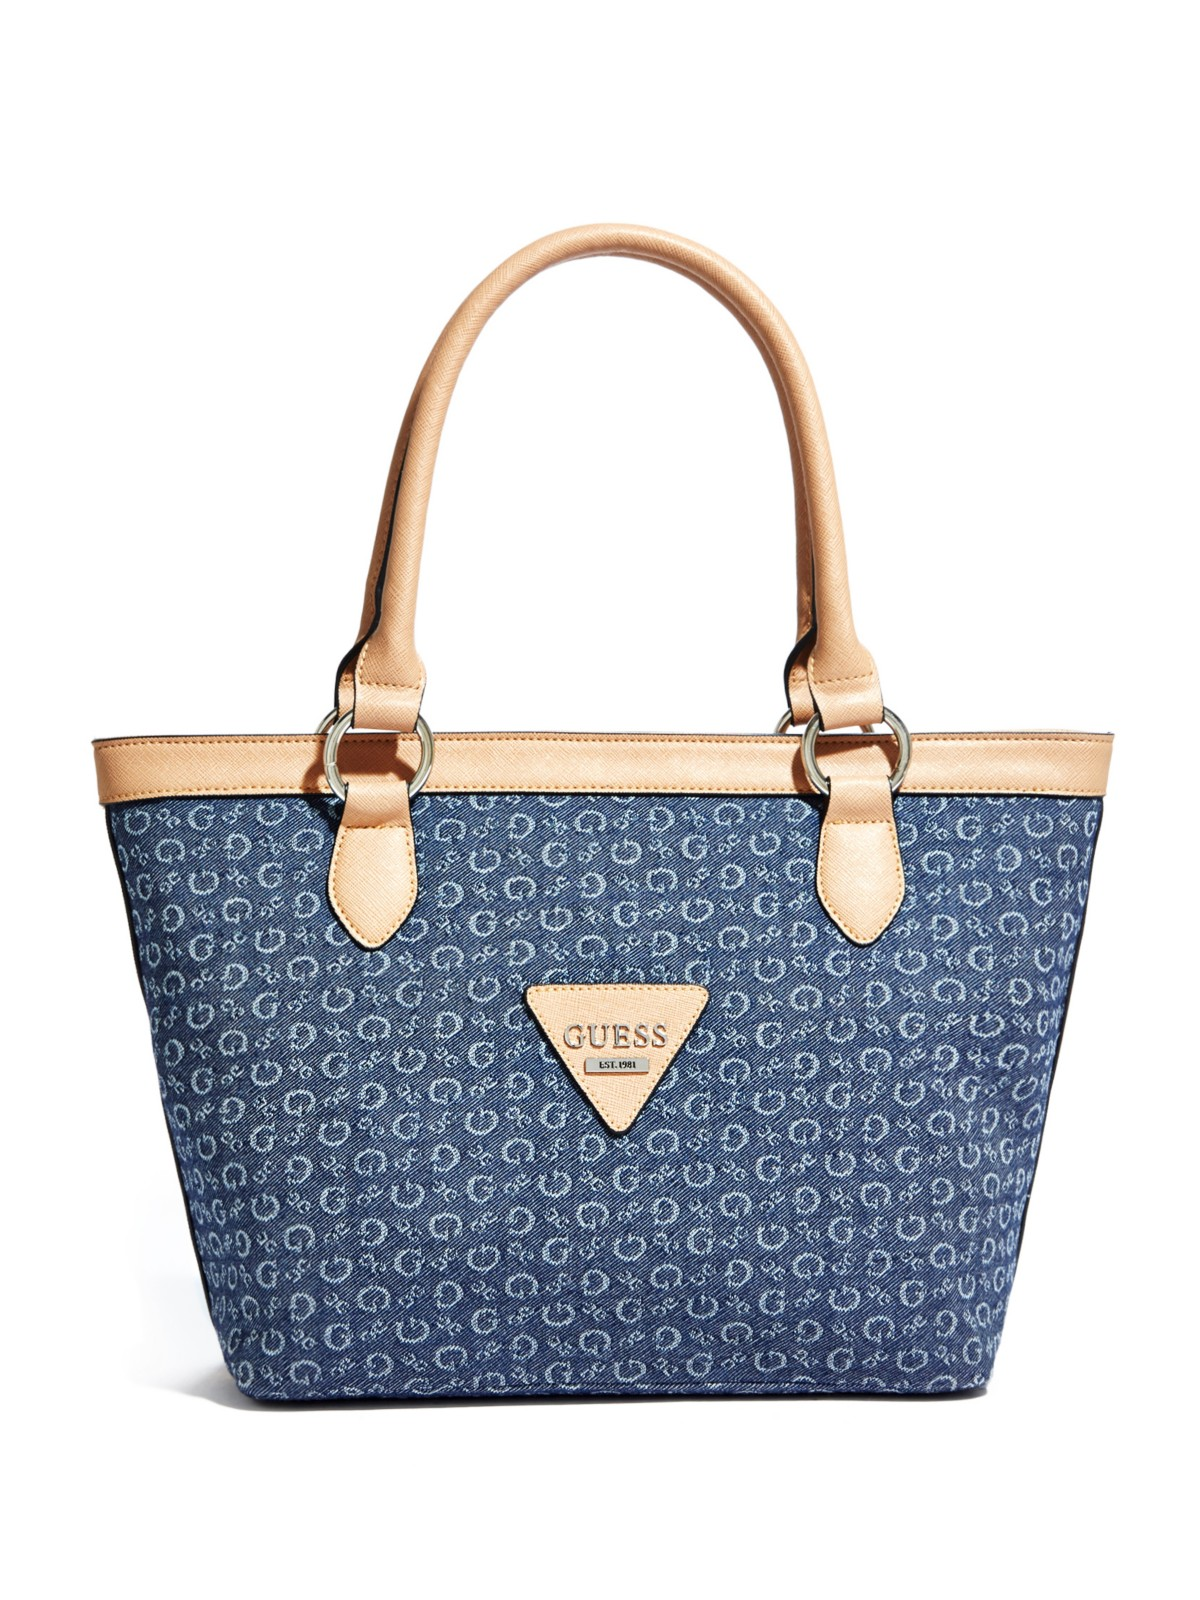 Guess Denim Handbag. GUESS Varsity Pop Shopper Denim.